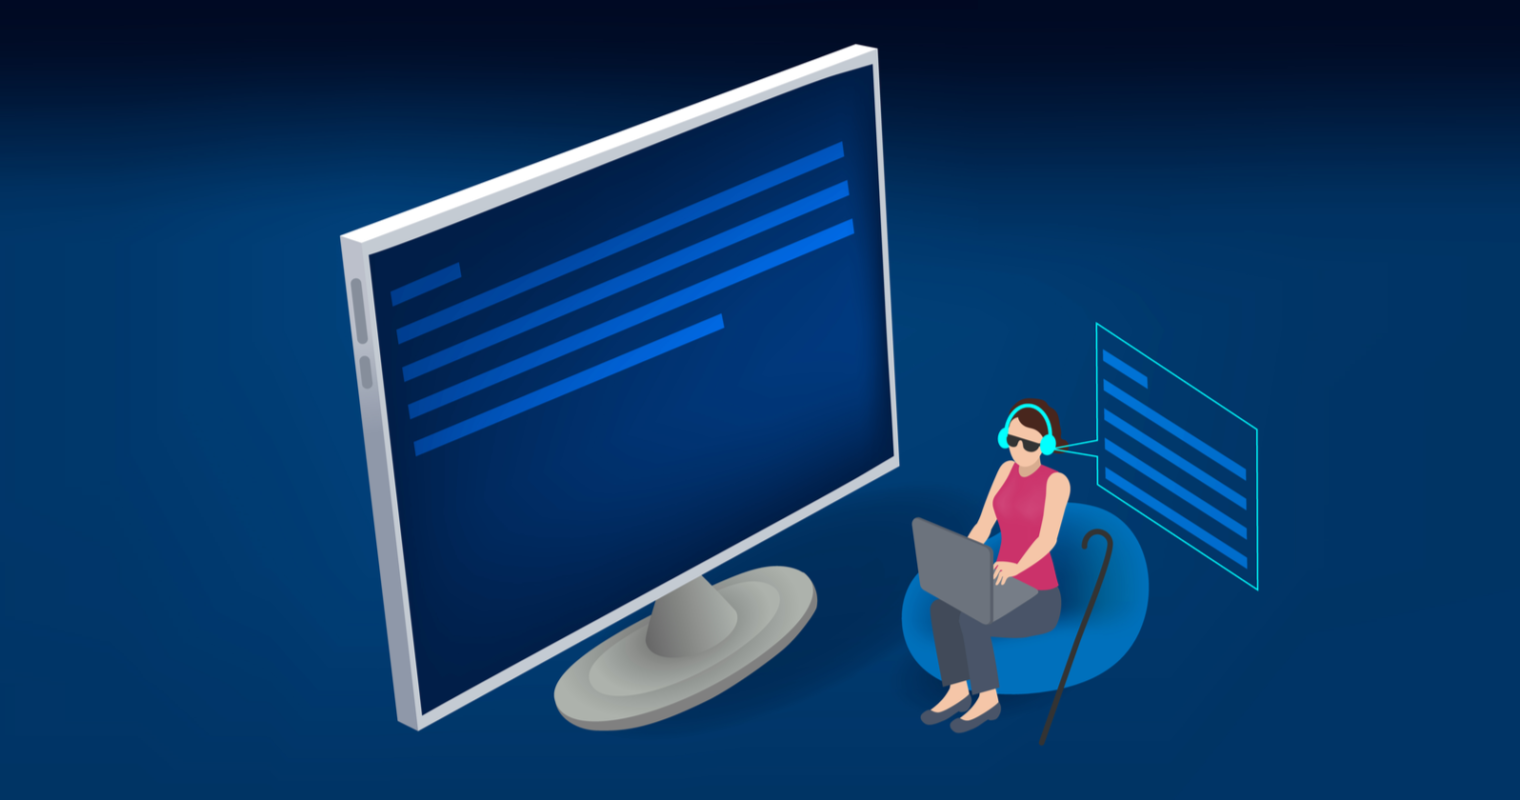 Accessibility for Digital Businesses: How Your Company Can Be a Leader